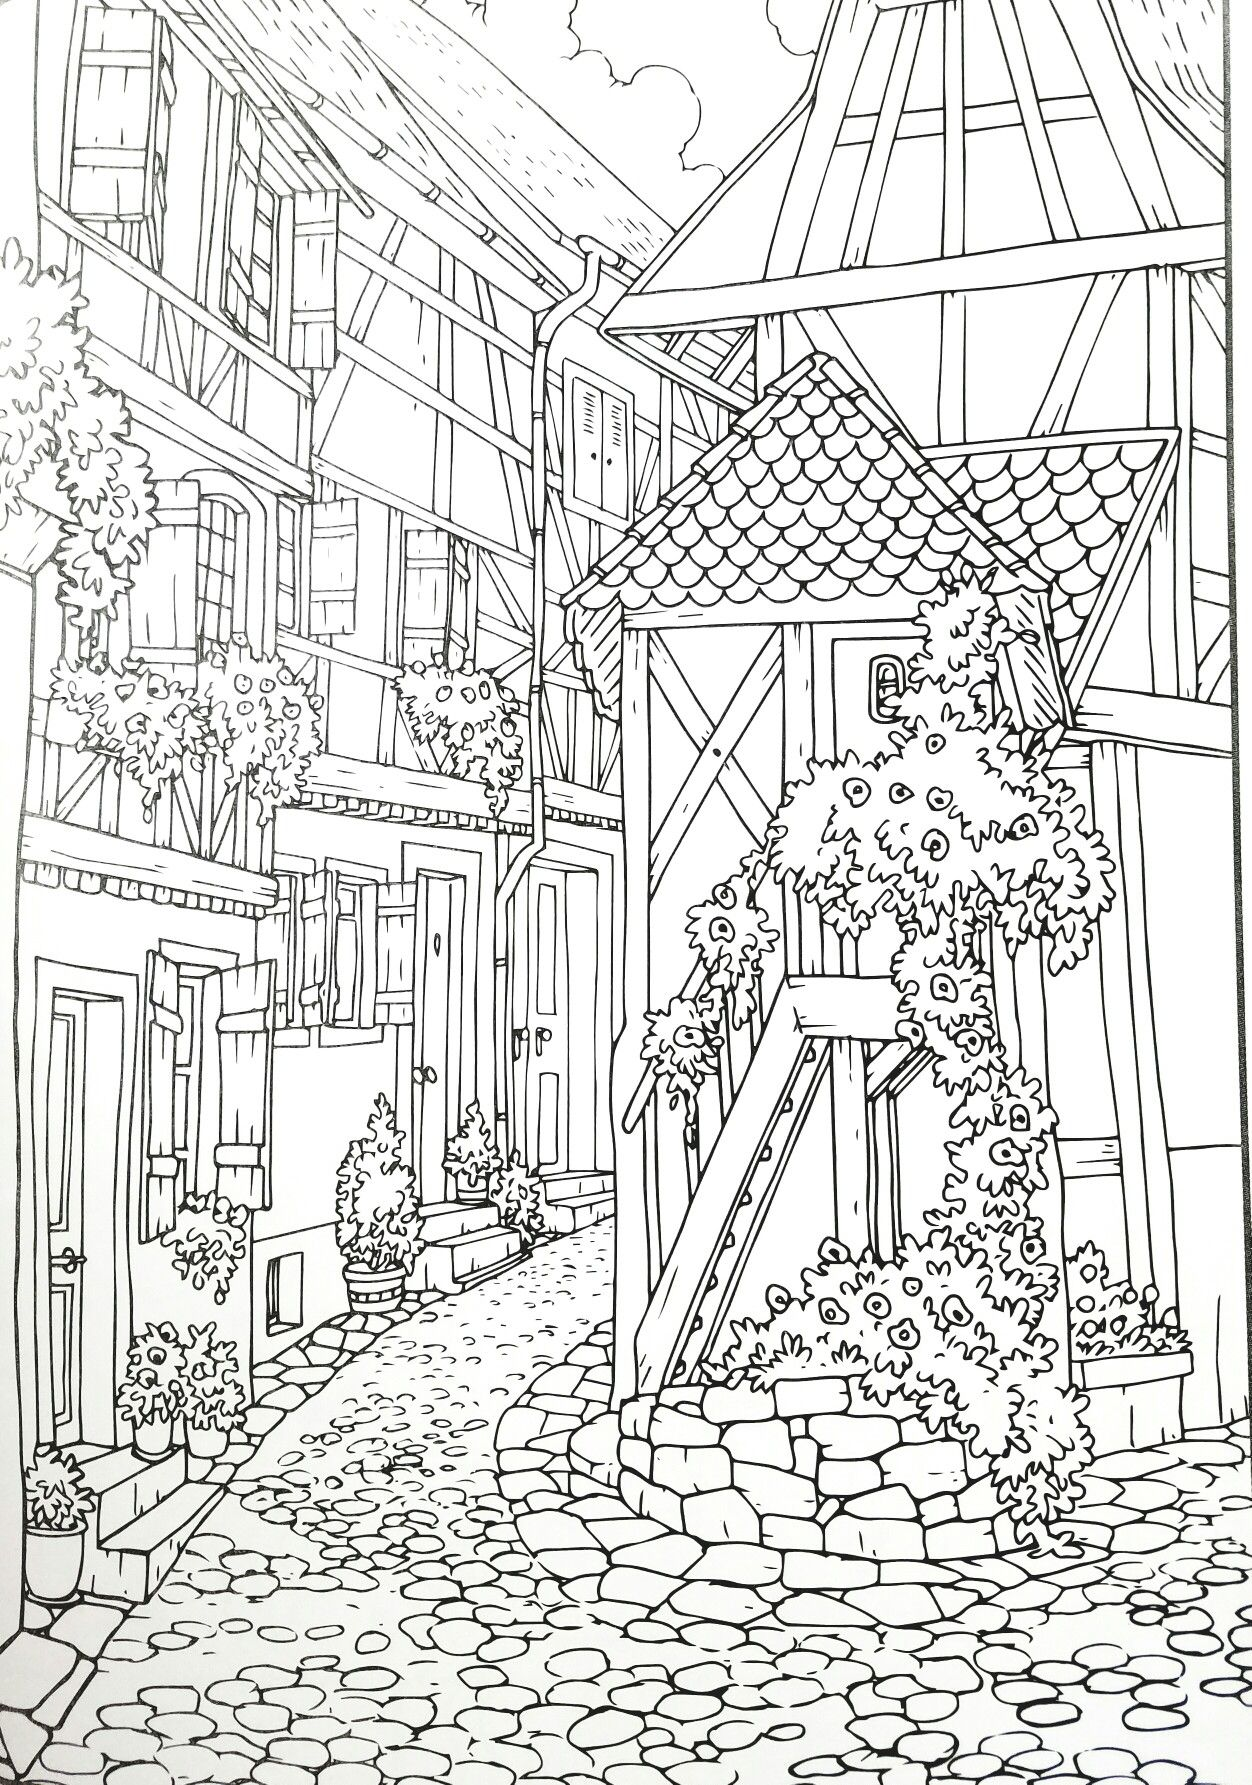 Adult Coloring Page Village With Images Coloring Pages Printable Adult Coloring Pages Adult Coloring